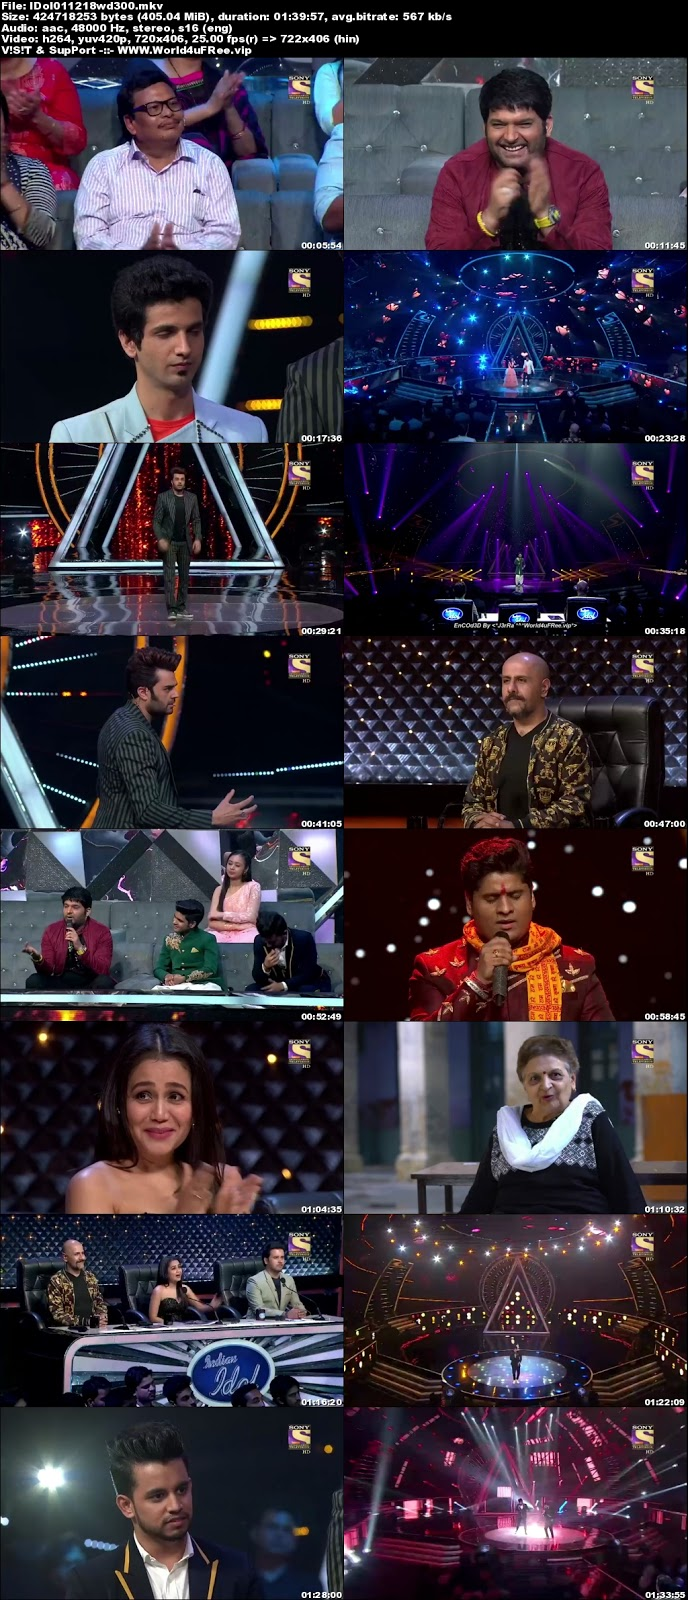 Indian Idol Season 10 01 December 2018 WEBRip 480p 300Mb  world4ufree.fun tv show Indian Idol Season 10 hindi tv show Indian Idol Season 10  Sony Set  tv show compressed small size free download or watch online at world4ufree.fun